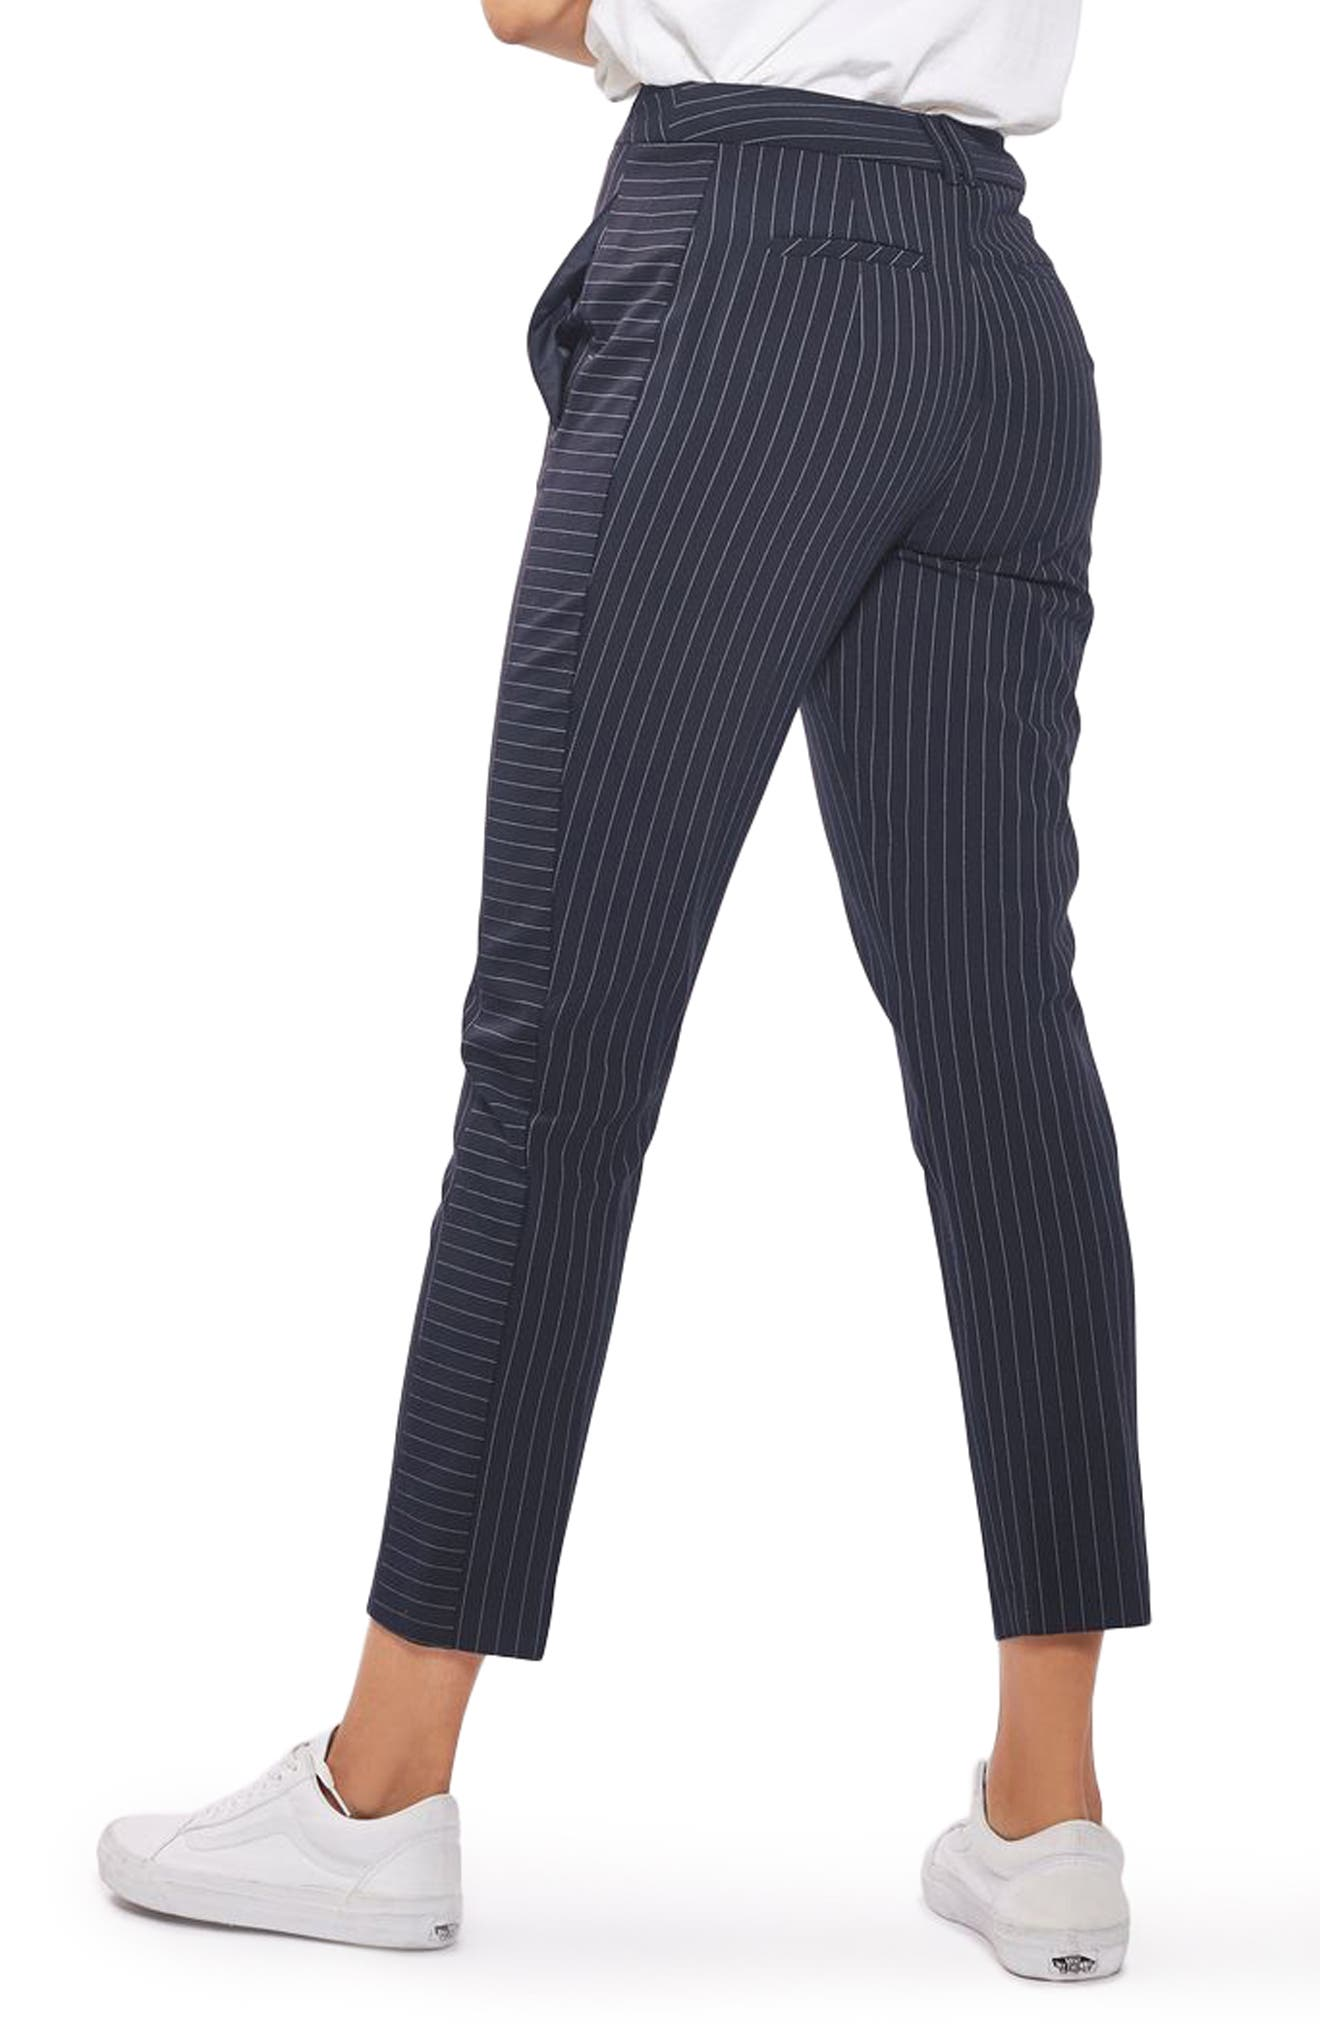 Cut About Pinstripe Cigarette Trousers,                             Alternate thumbnail 3, color,                             Navy Blue